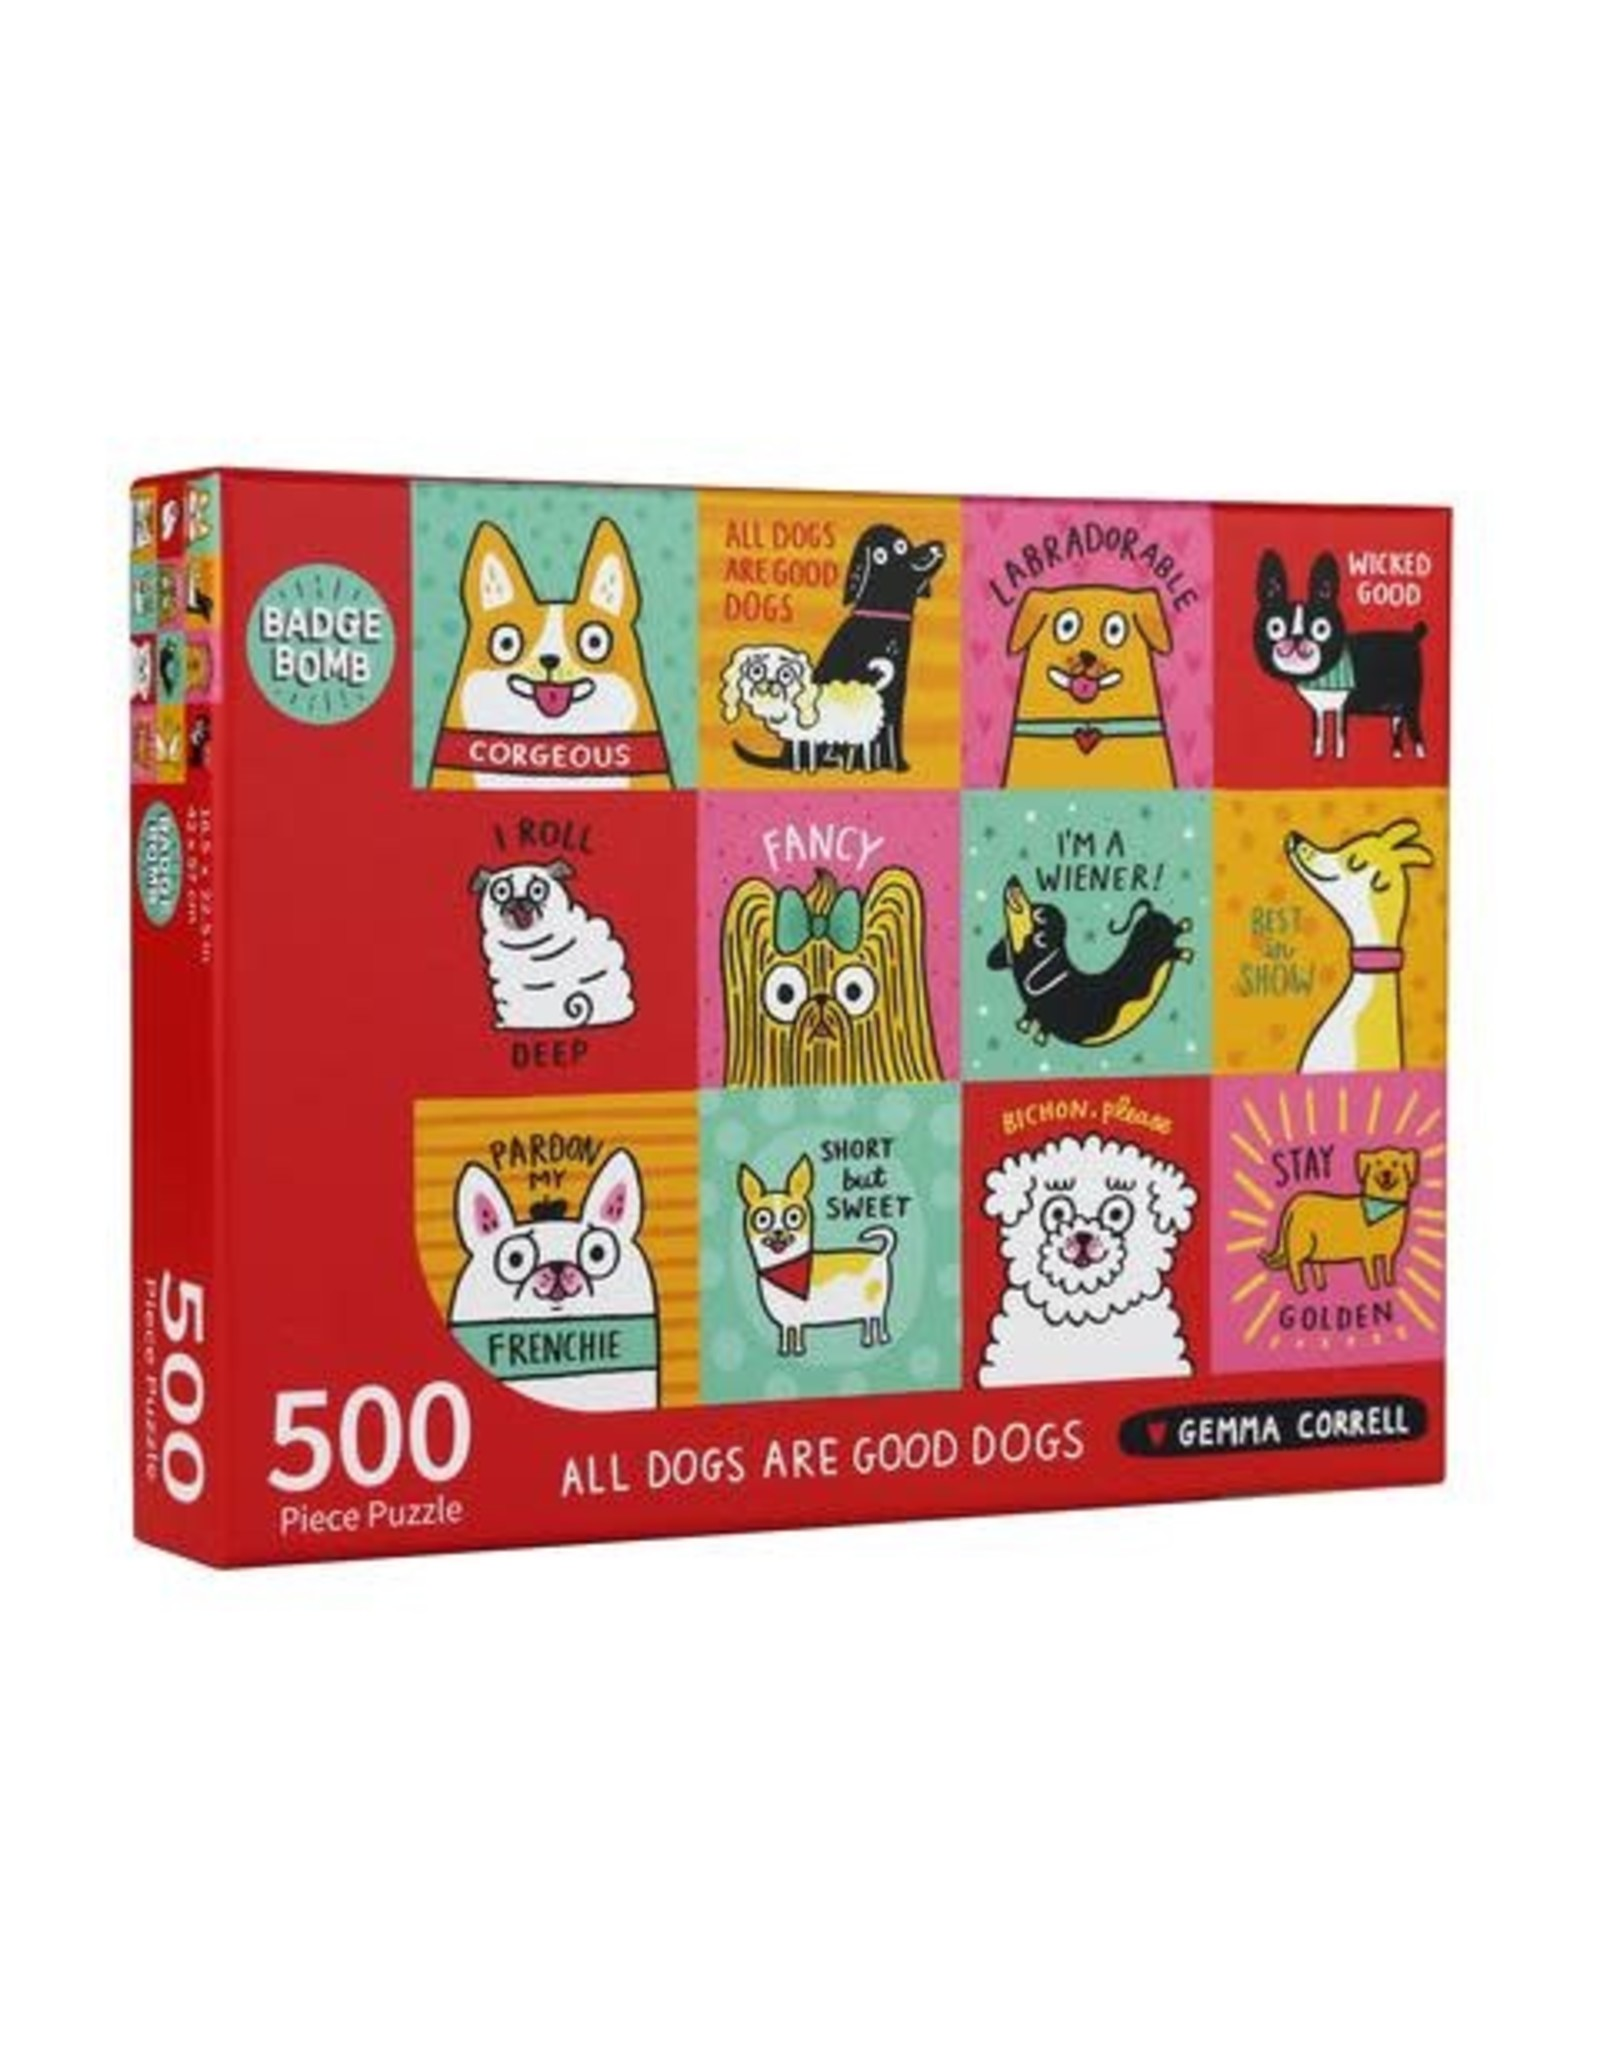 All Dogs are Good Dogs 500 pc Puzzle